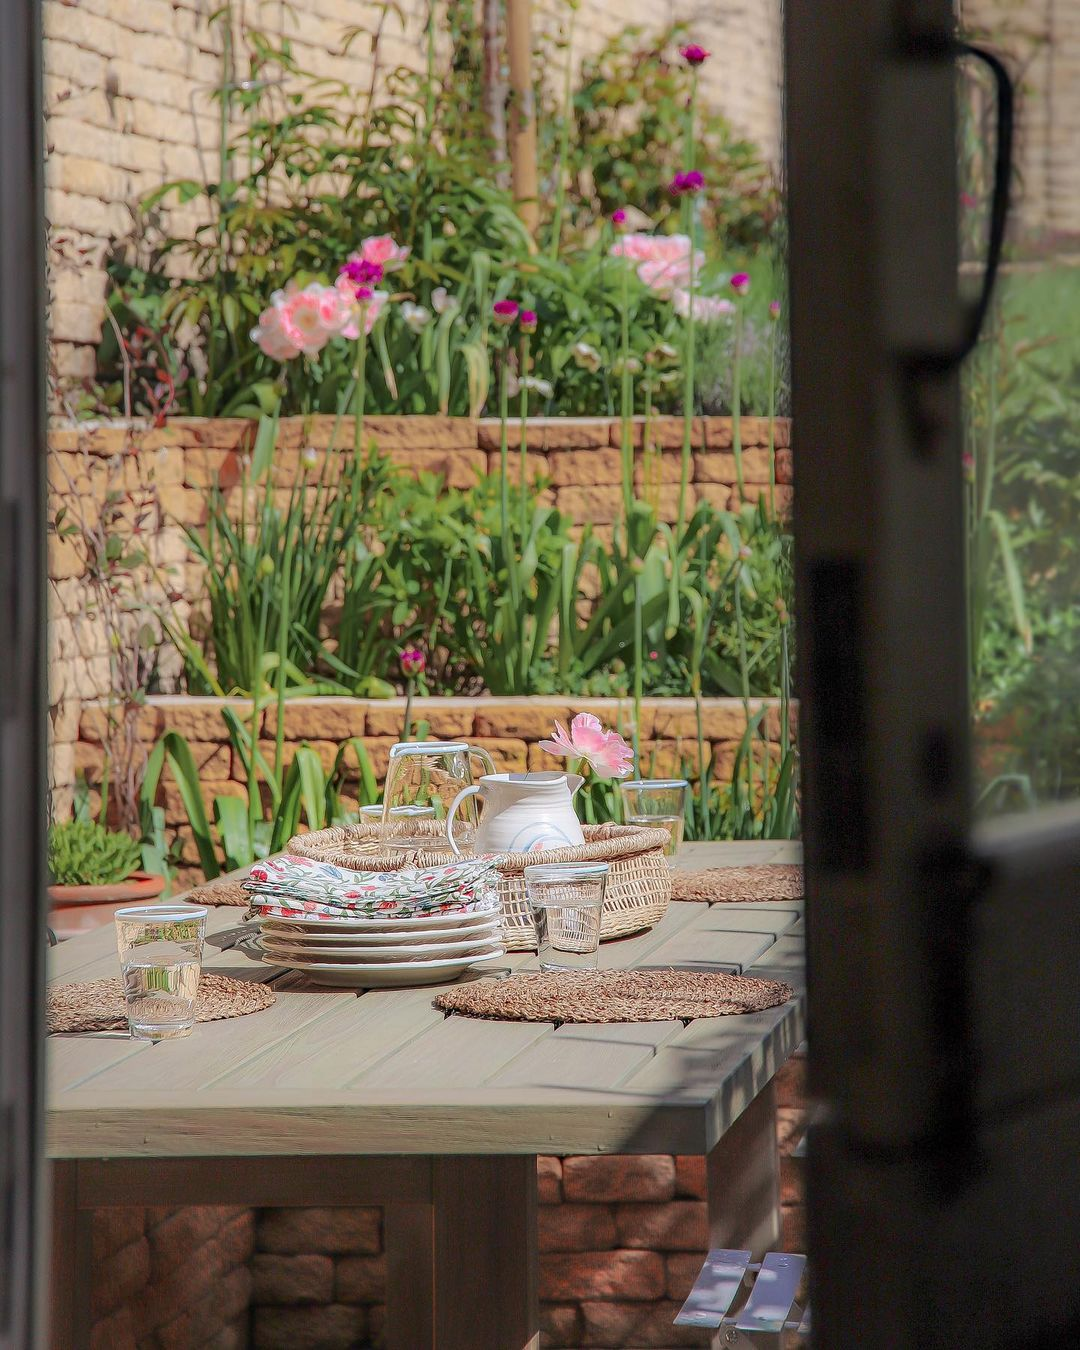 A beautifully restored cottage garden space